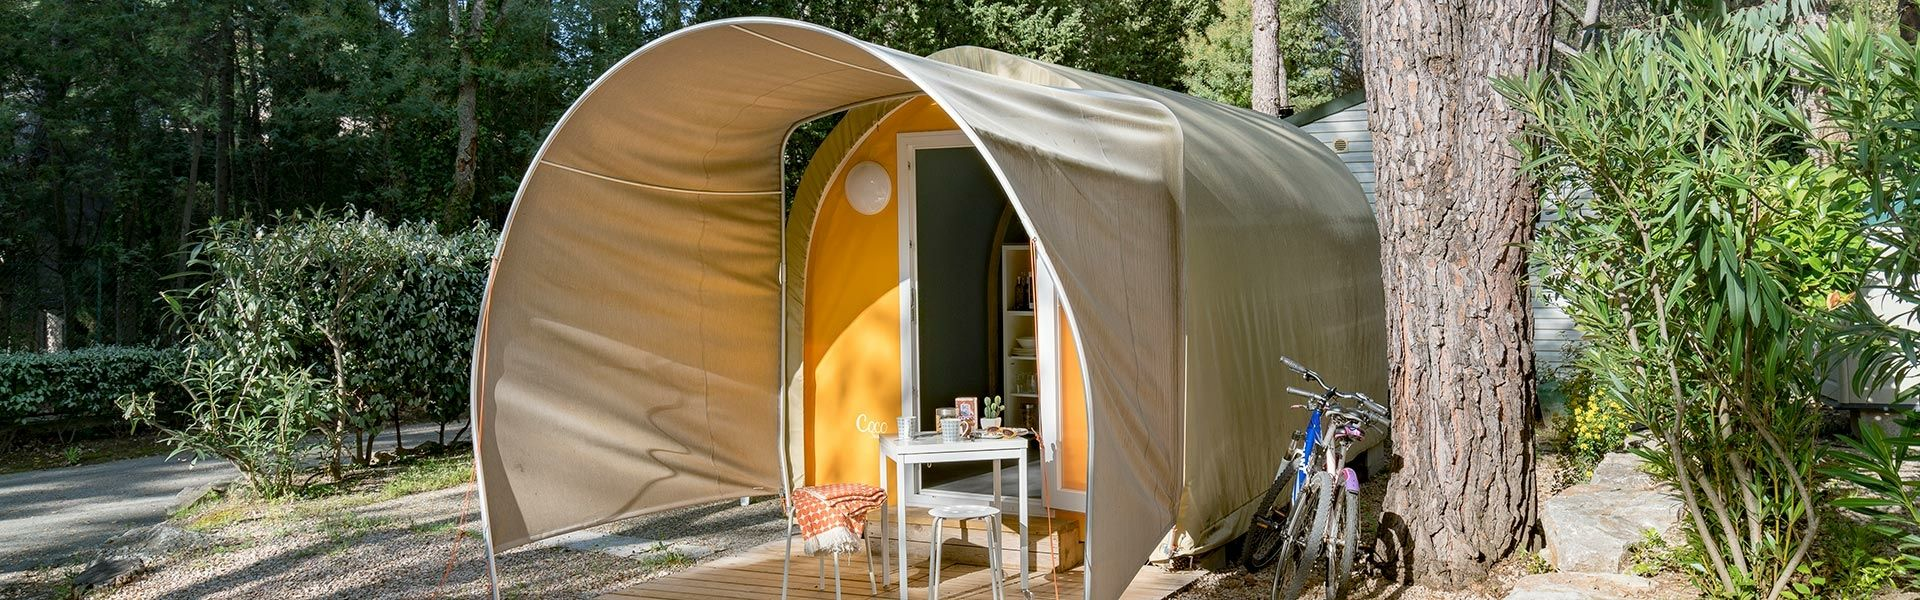 Camping Coco Sweet tent